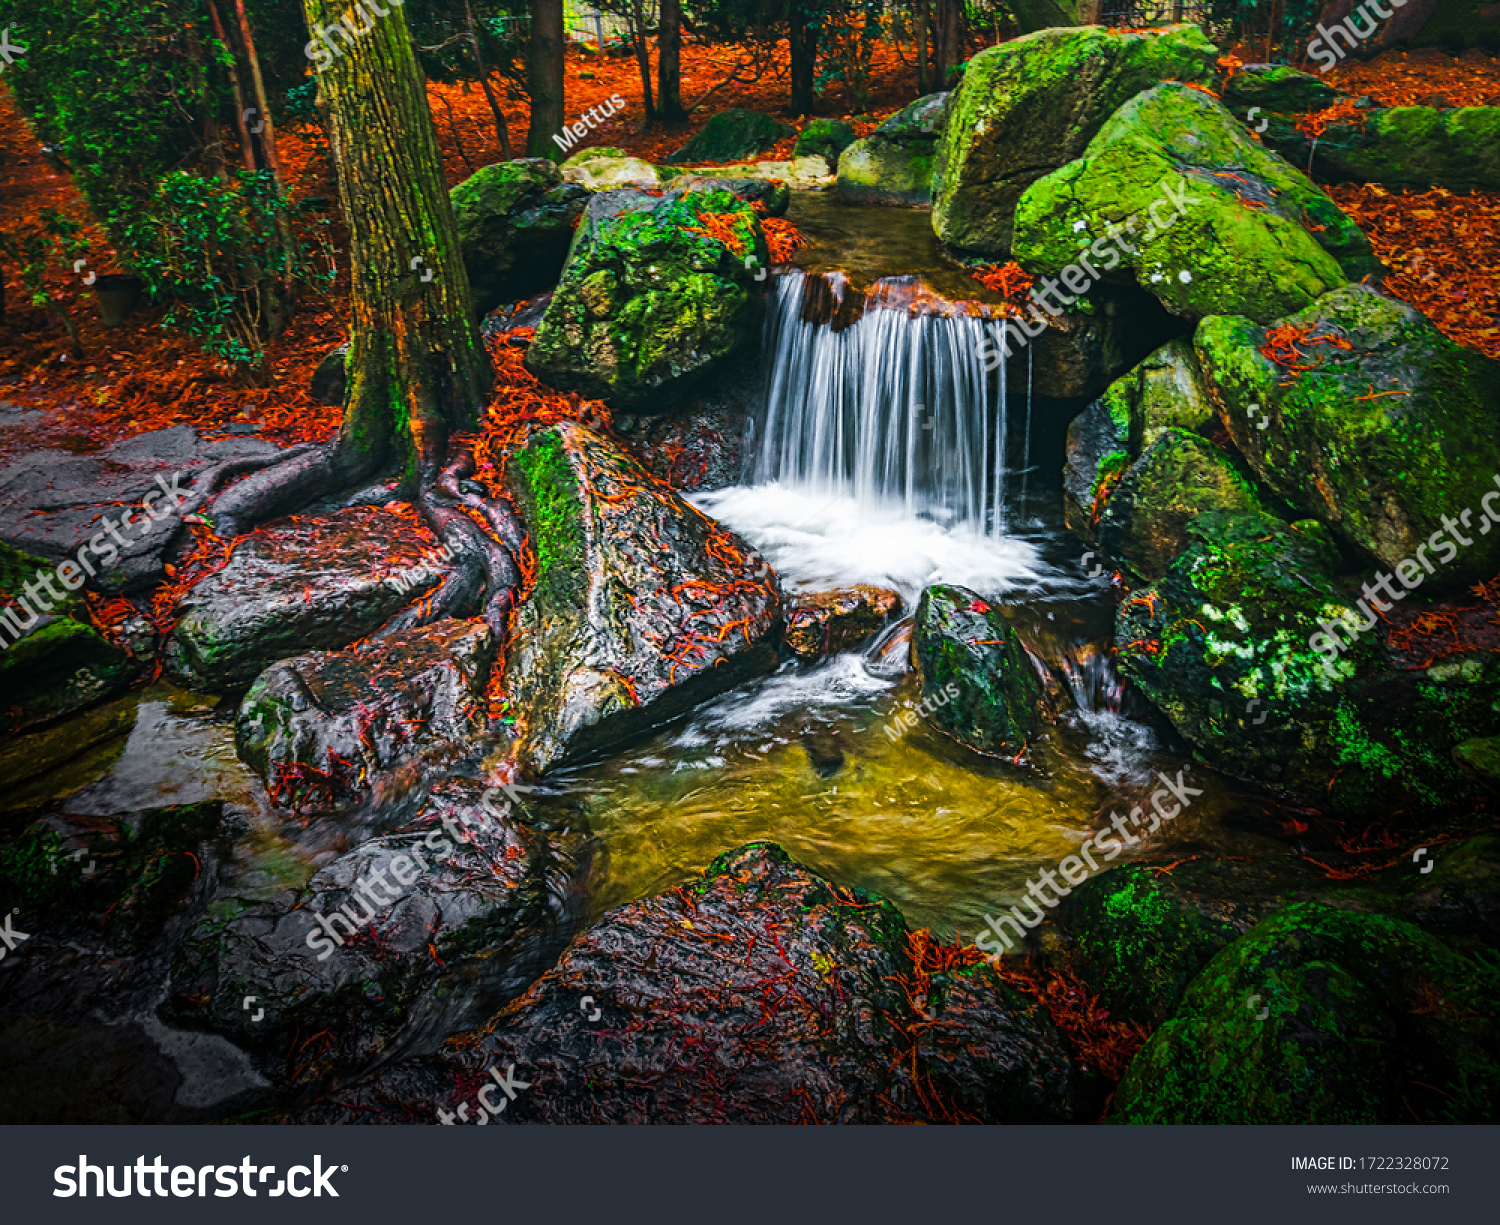 stock-photo-small-nice-waterfall-with-bl